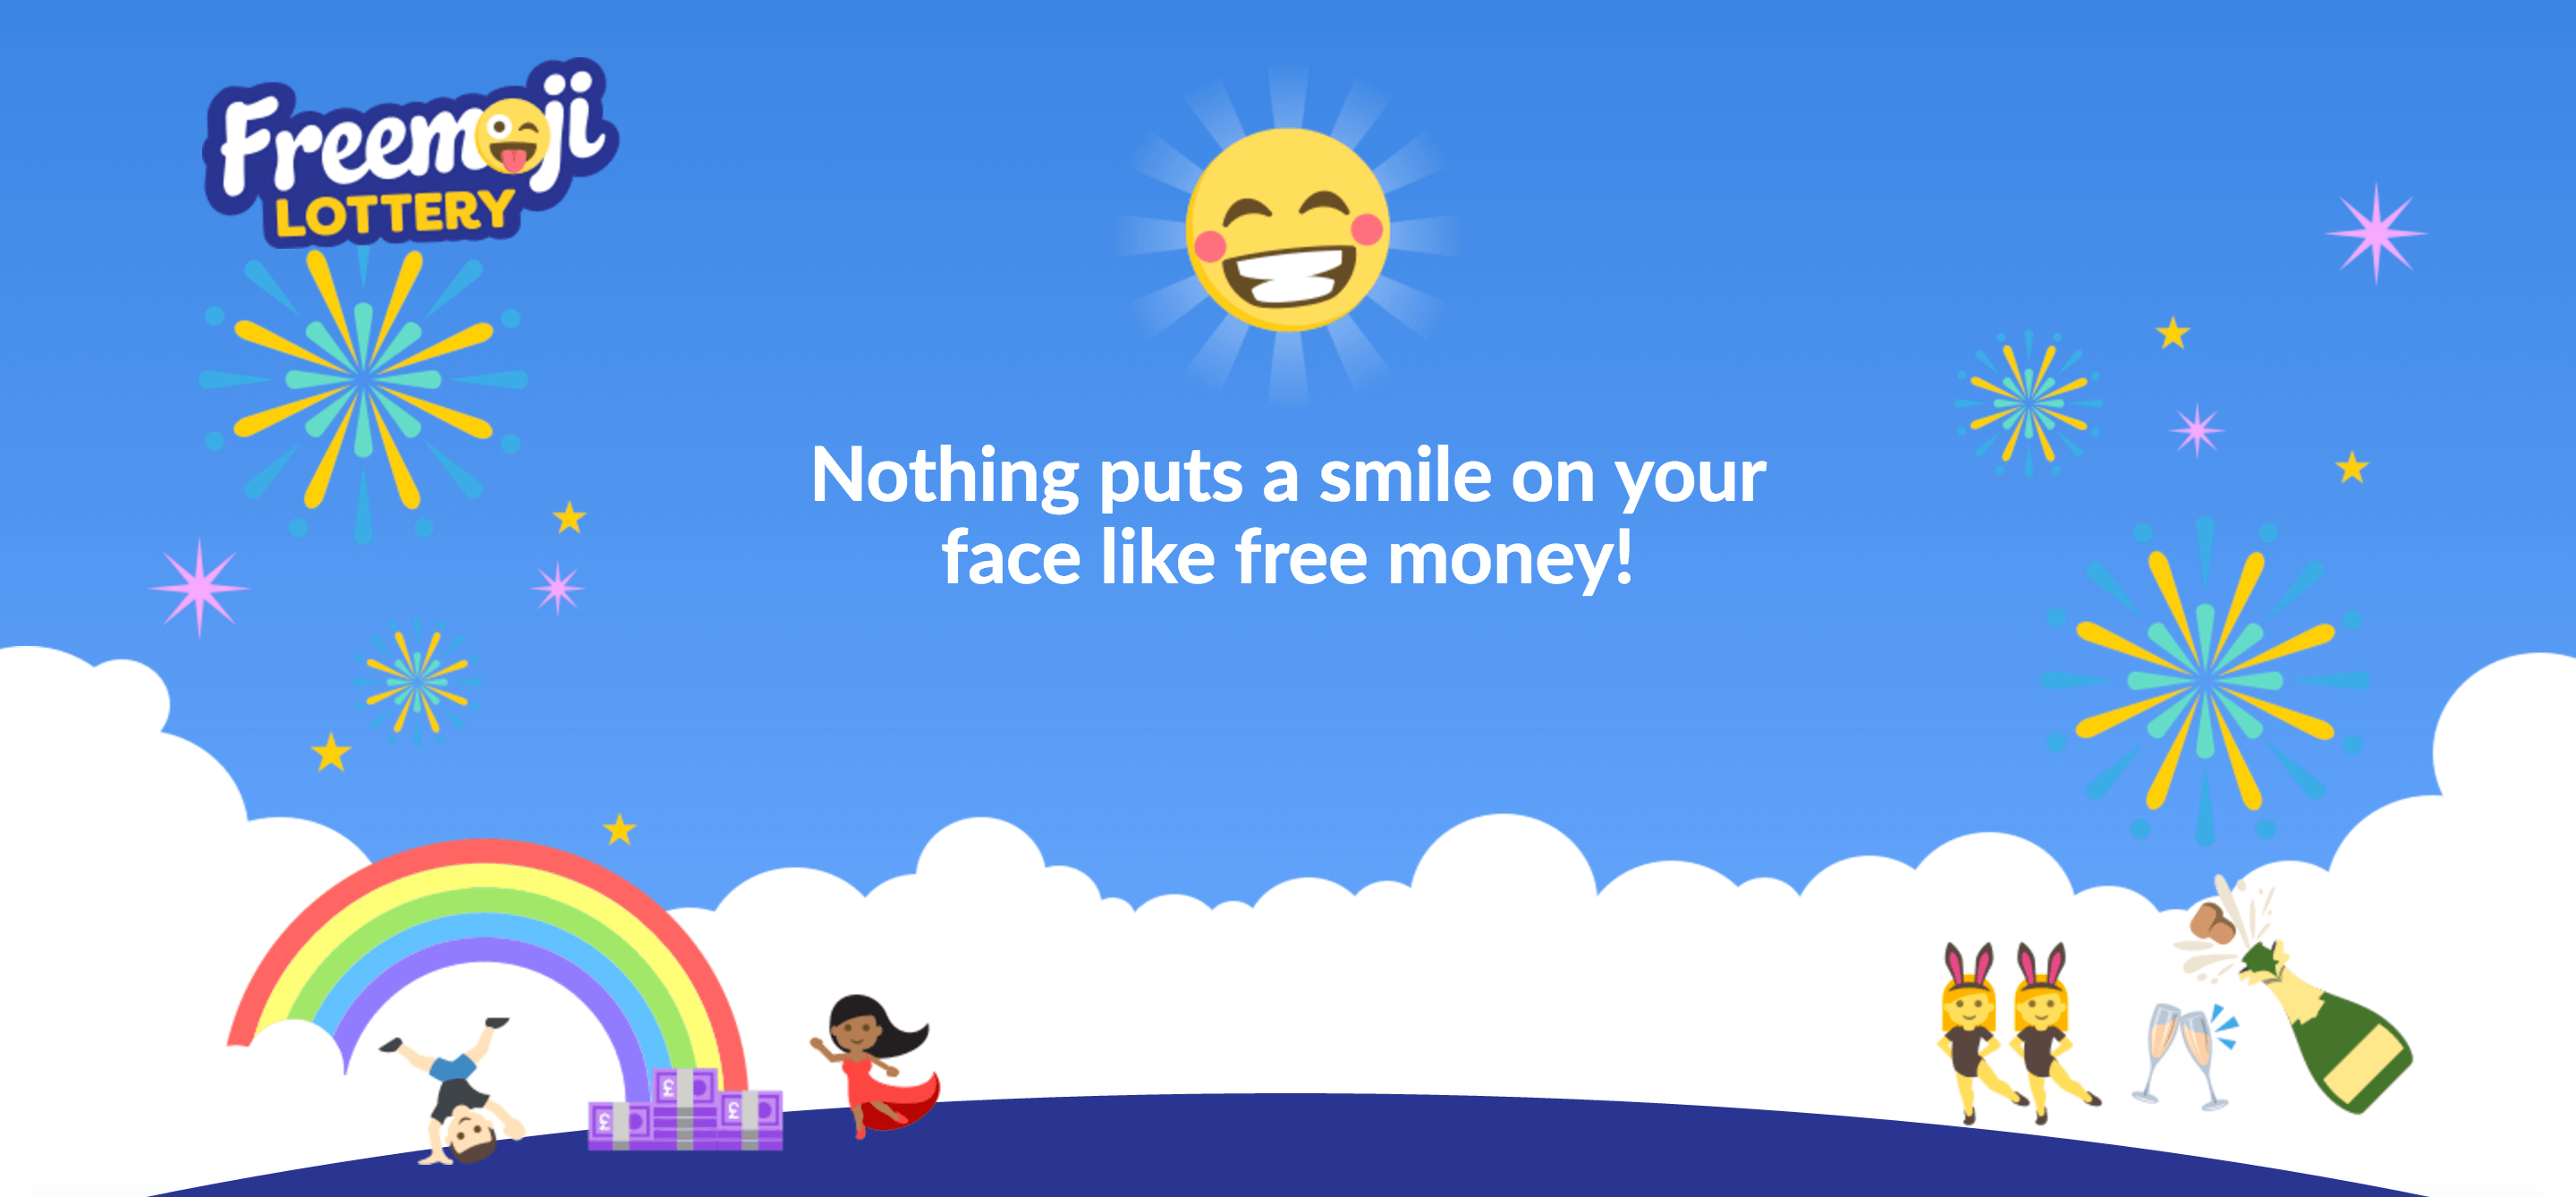 Freemoji Lottery | The Free Emoji Lottery